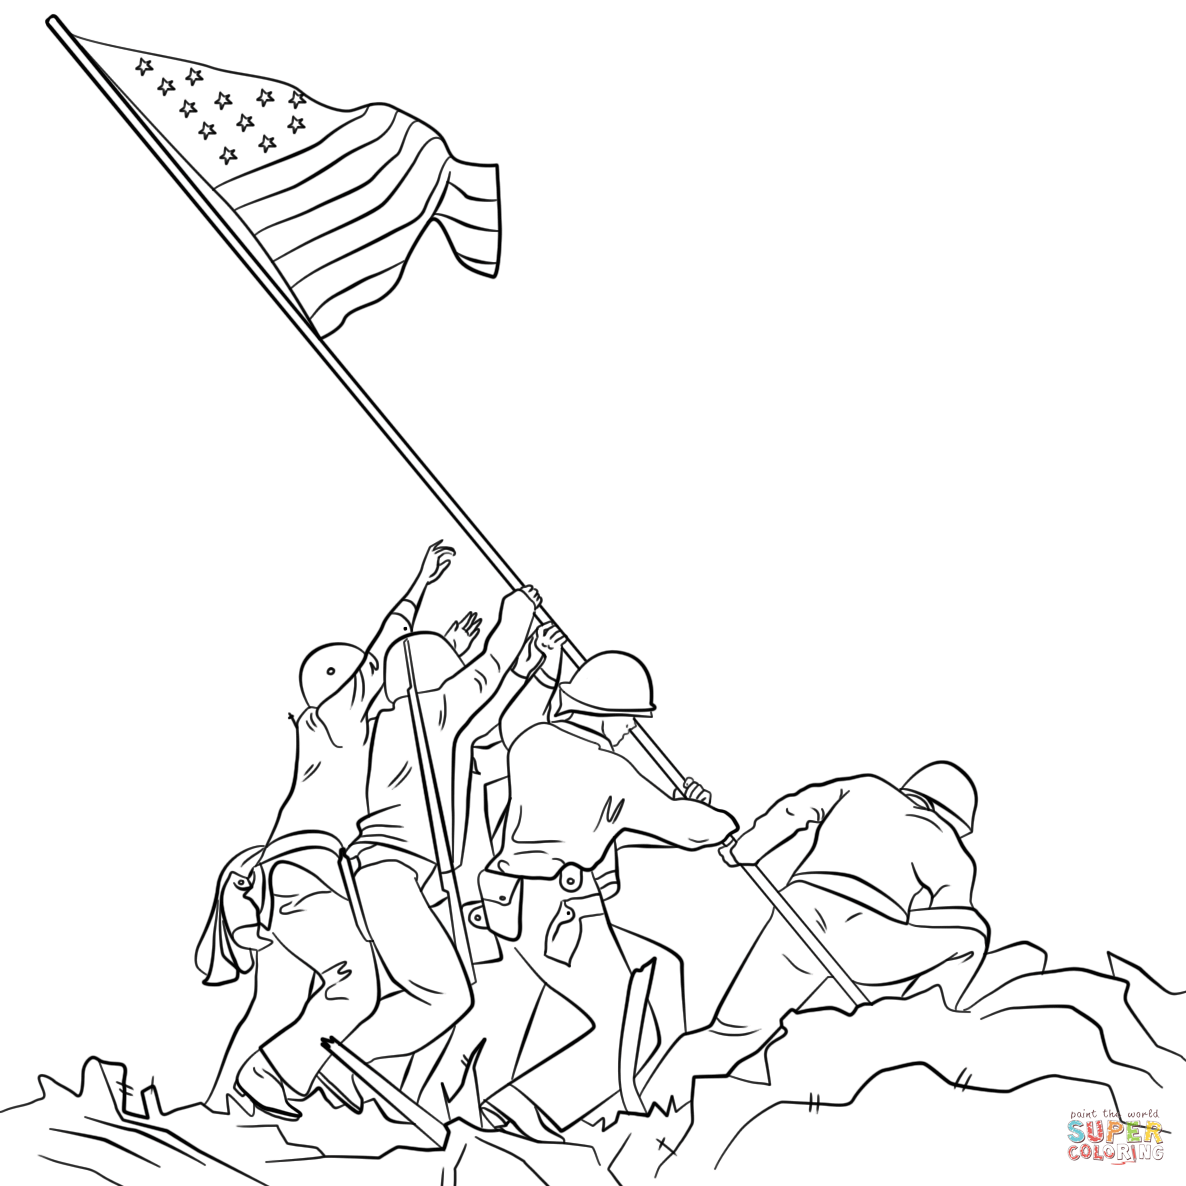 Soldiers Lifting Up Flag Clipart.